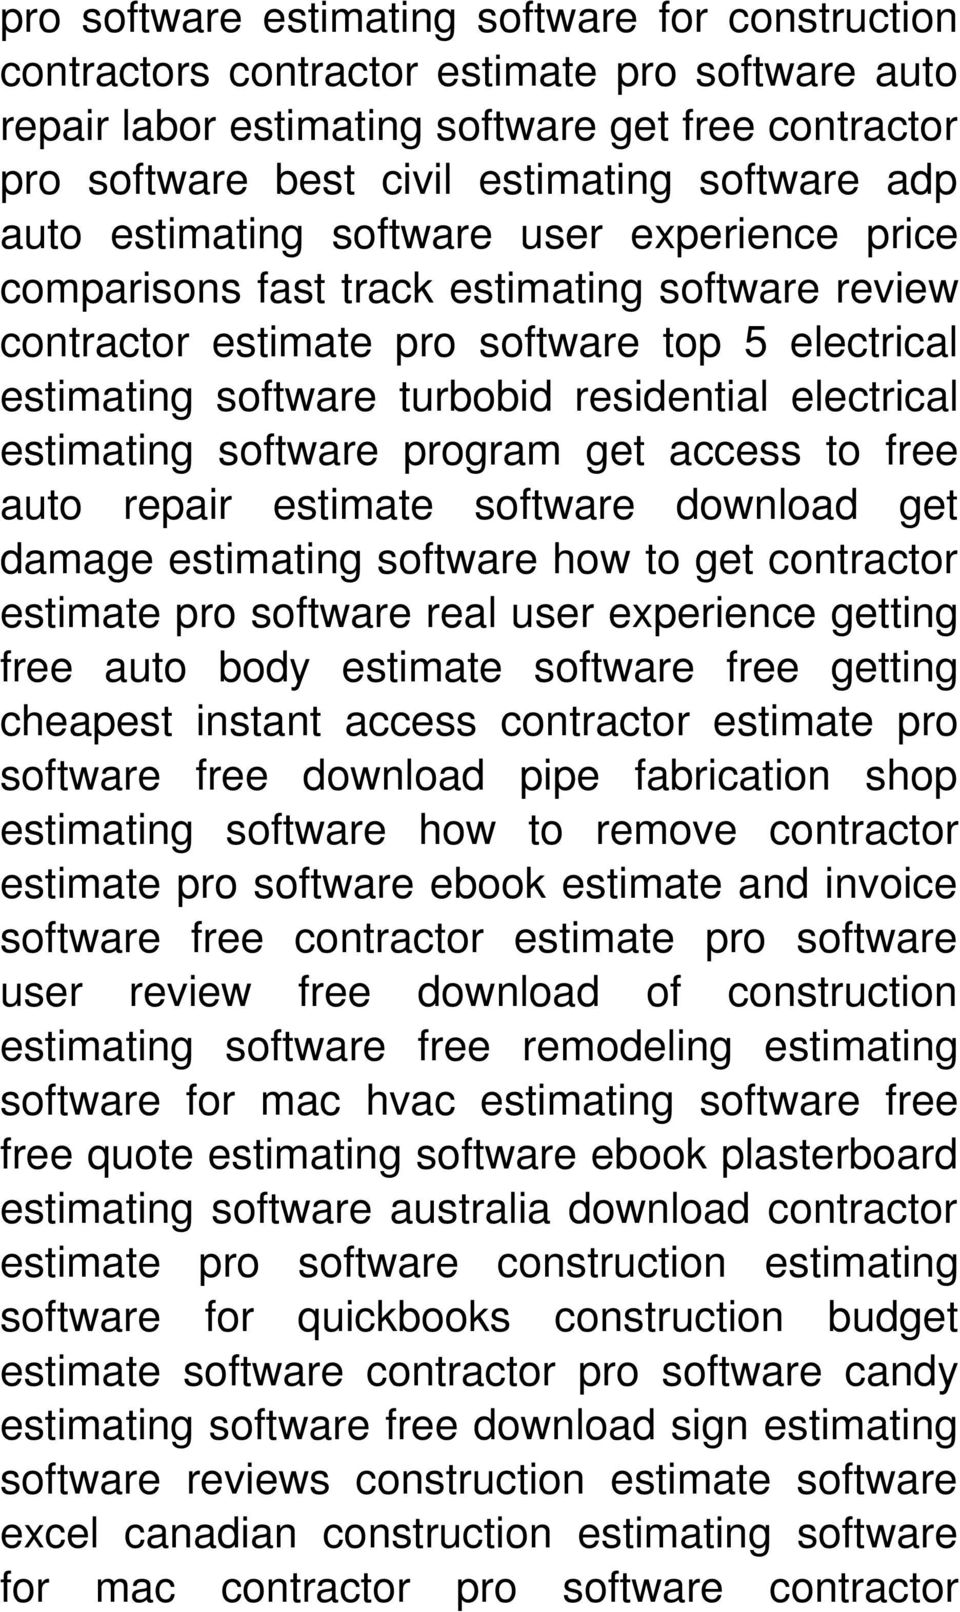 electrical estimating software program get access to free auto repair estimate software download get damage estimating software how to get contractor estimate pro software real user experience